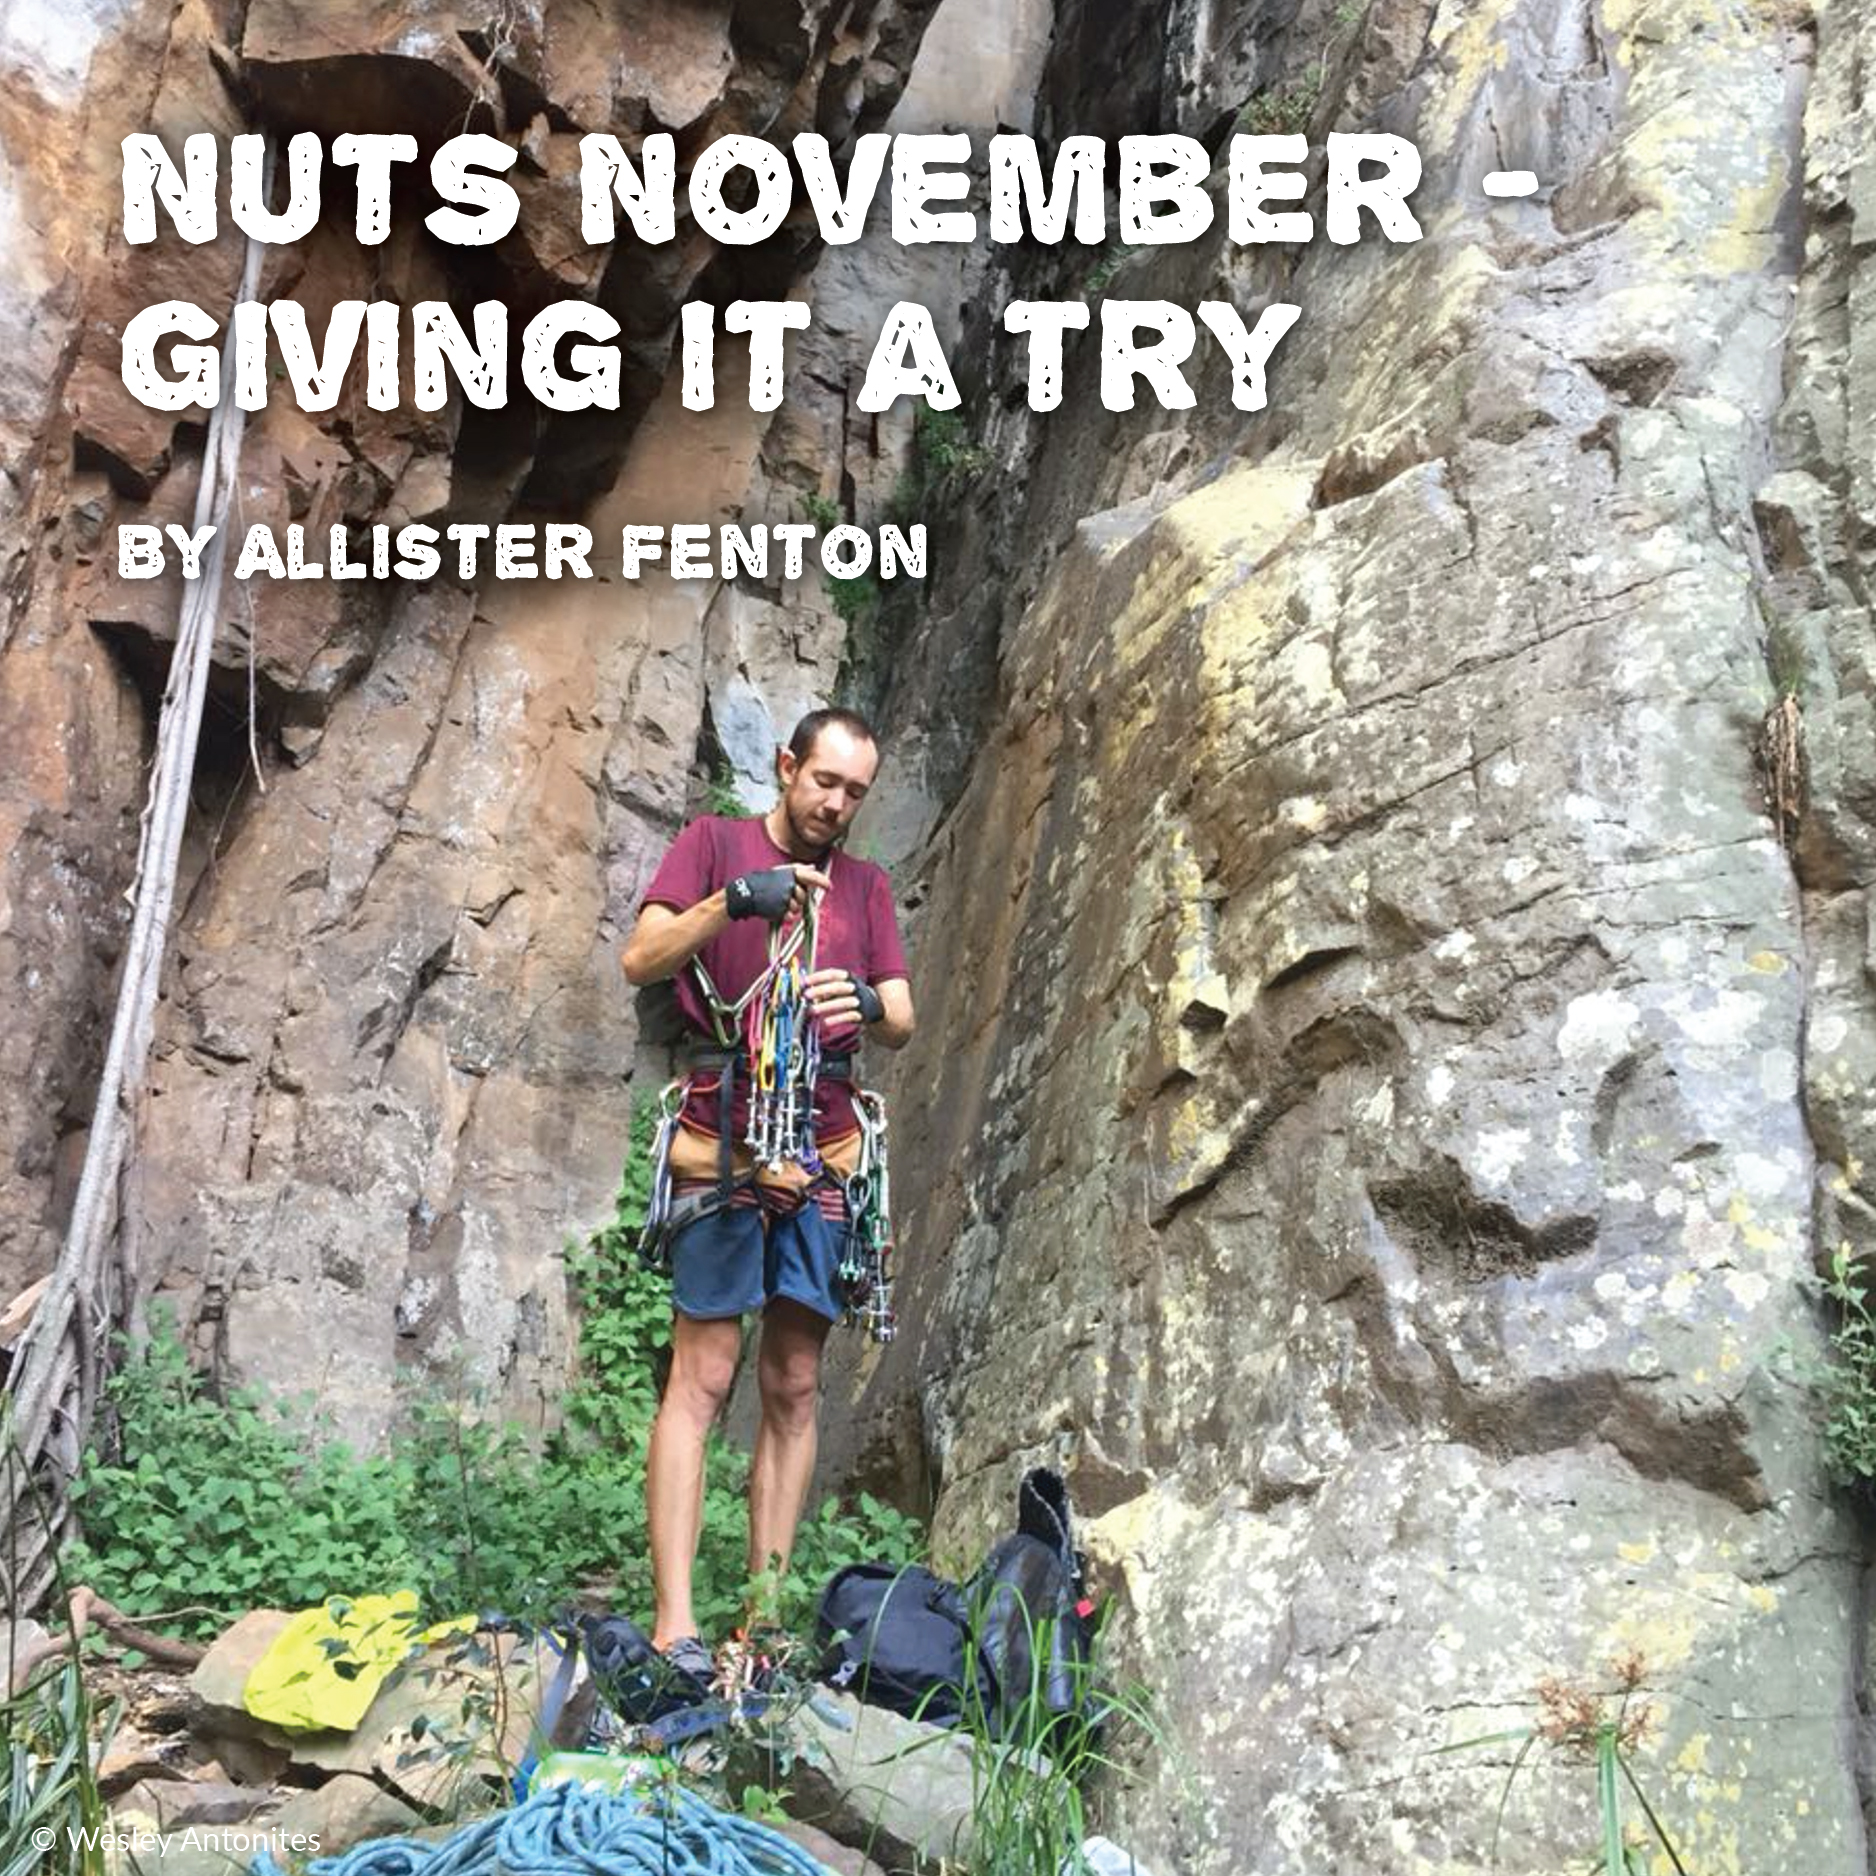 Nuts November - Giving it a try